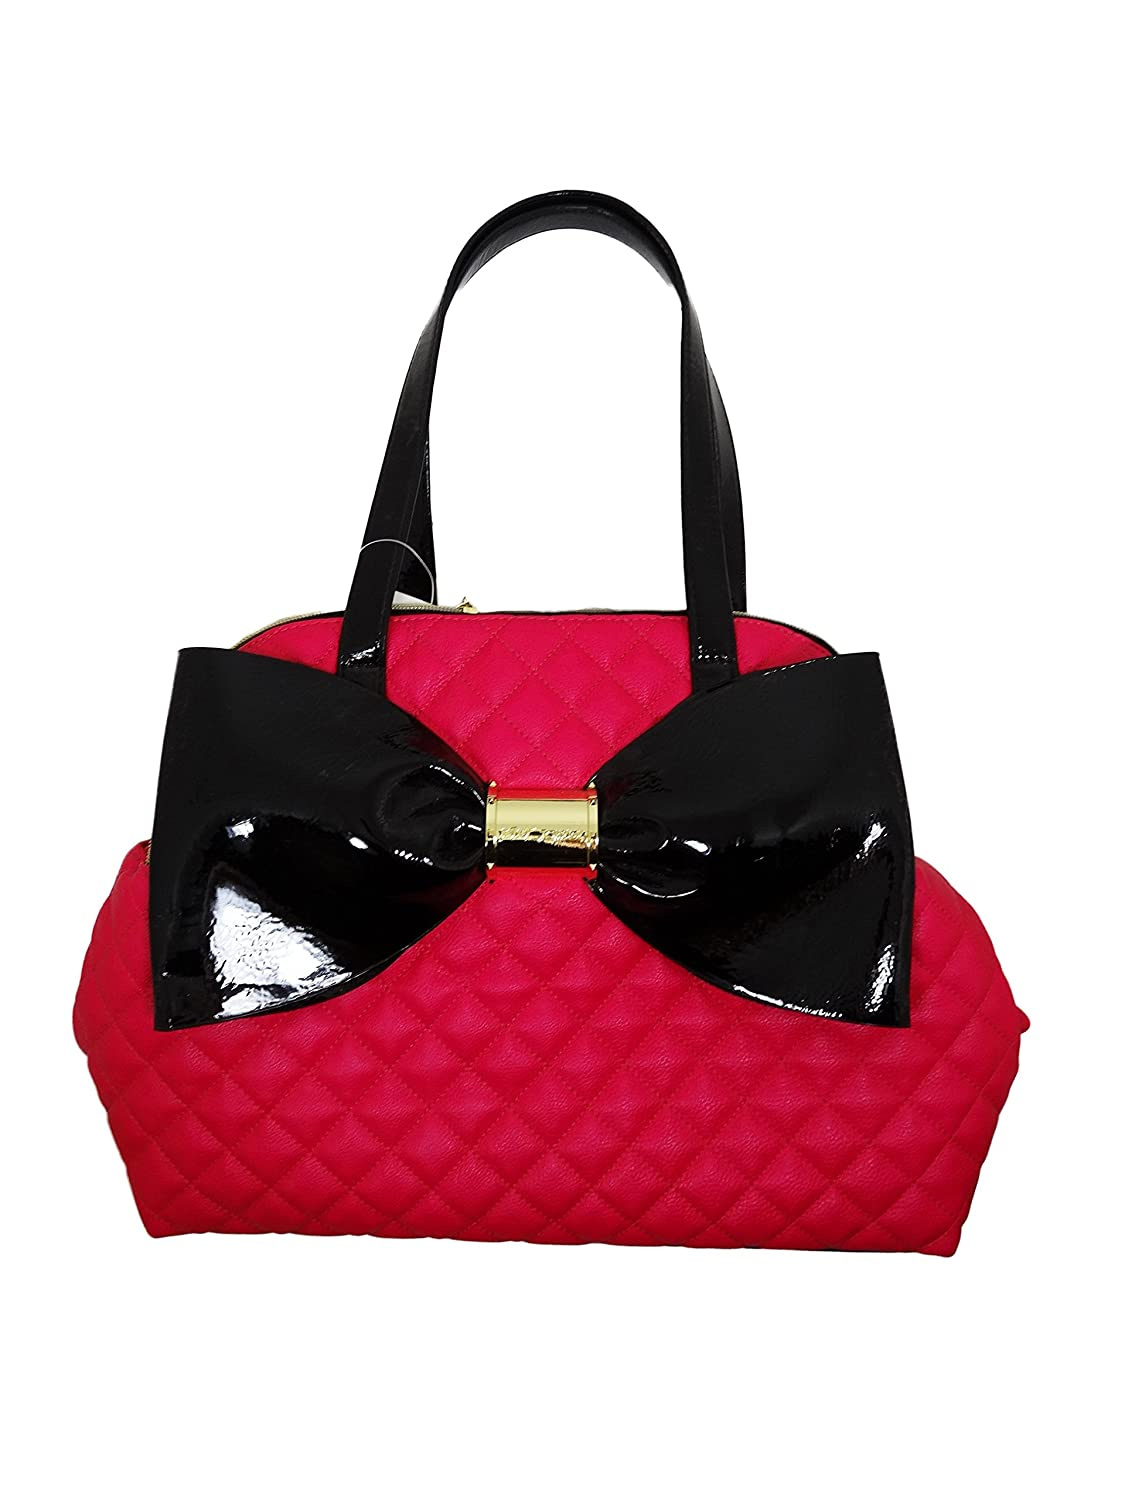 Betsey Johnson Bow Nanza Triple Compartment Handbag Purse